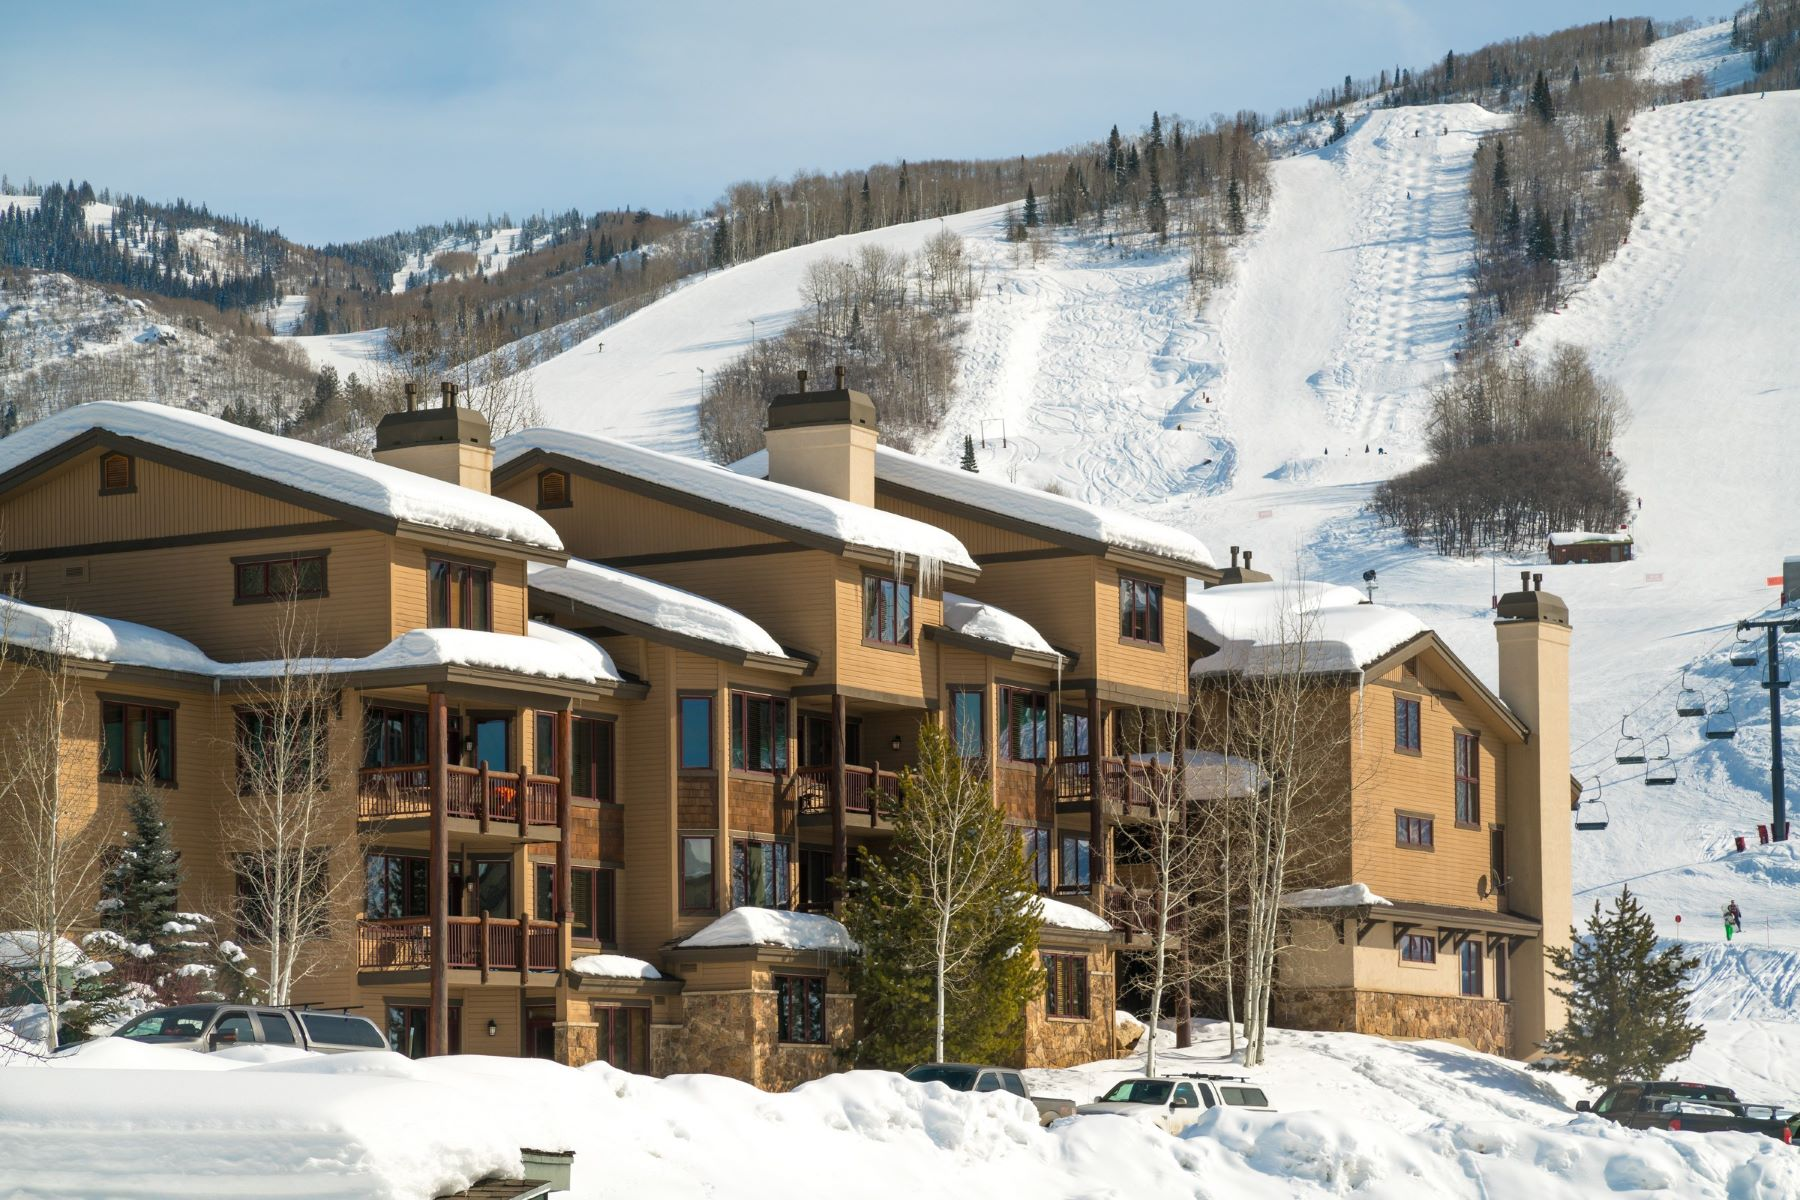 Condominium for Sale at Slopeside Luxury 2085 Ski Time Square Dr 211B Steamboat Springs, Colorado 80487 United States